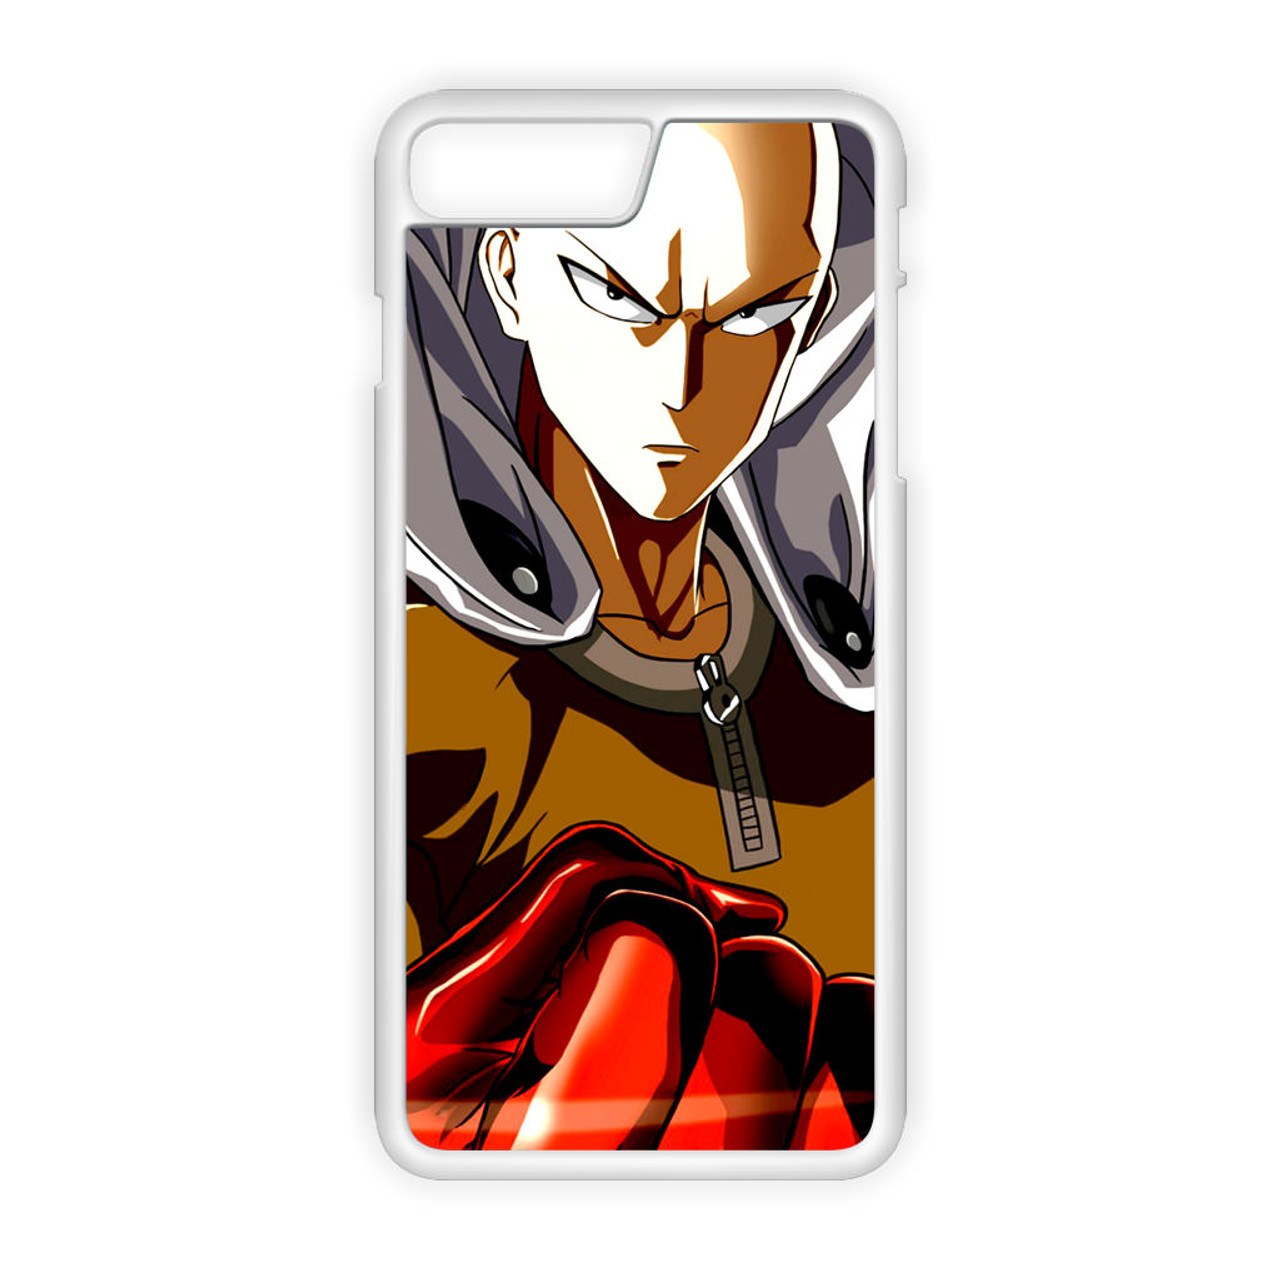 ONE PUNCH MAN 2 iphone case